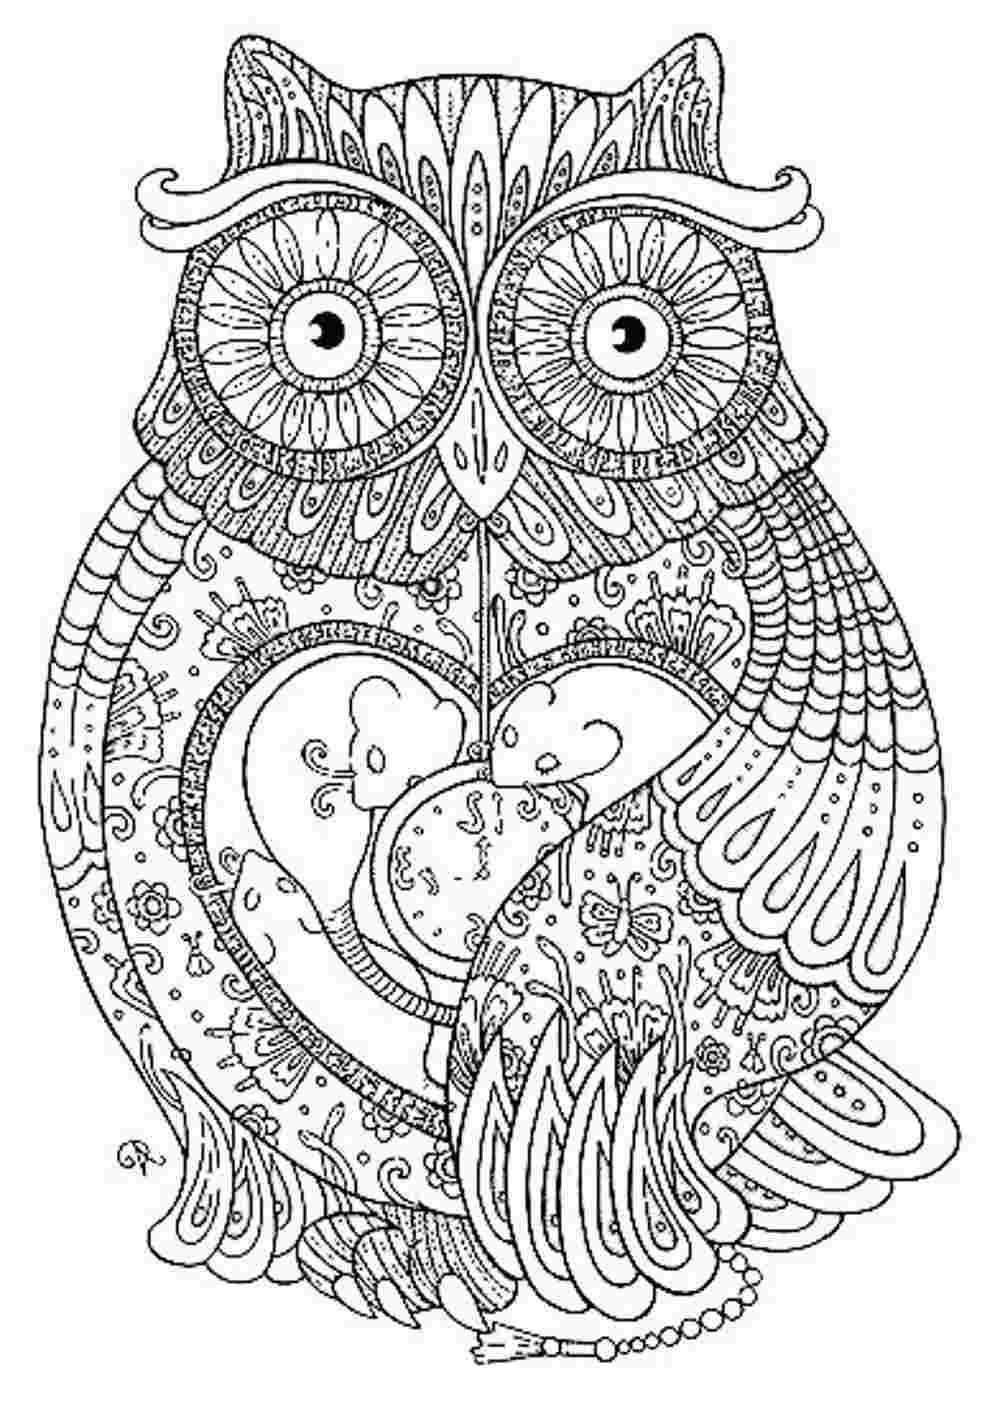 Mandala Coloring Pages to Print Gallery 14o - Free For Children